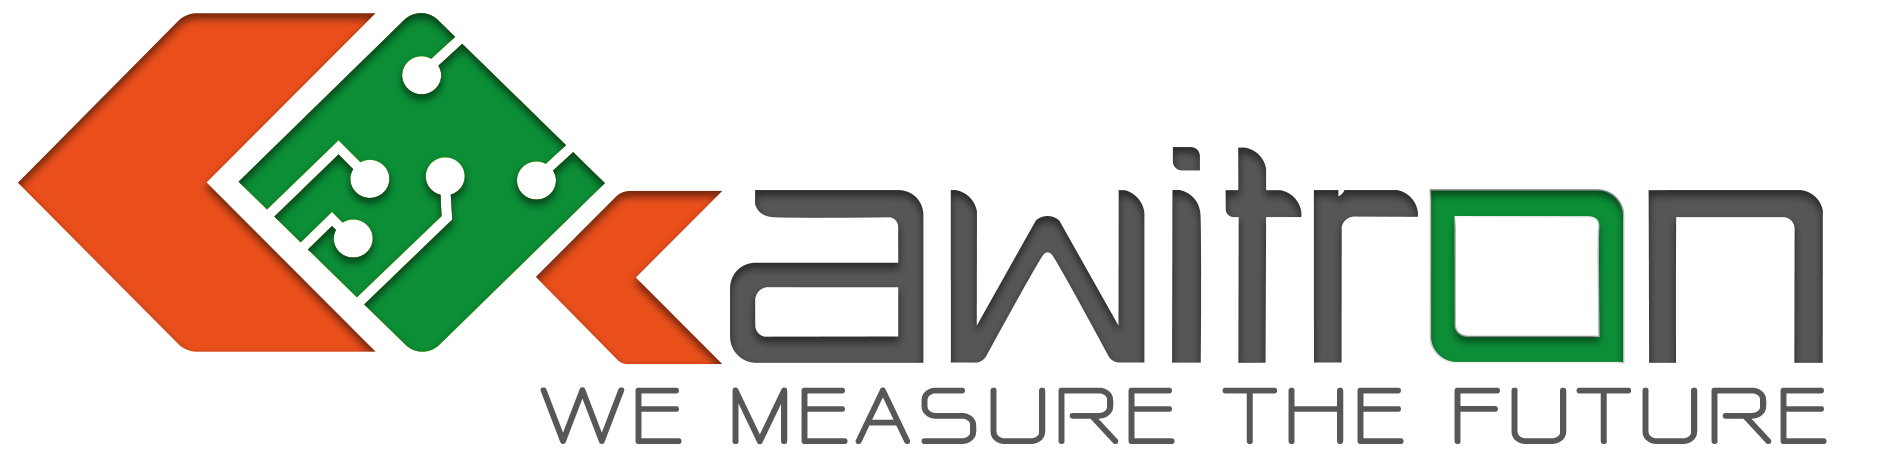 KAWITRON | WE MEASURE THE FUTURE